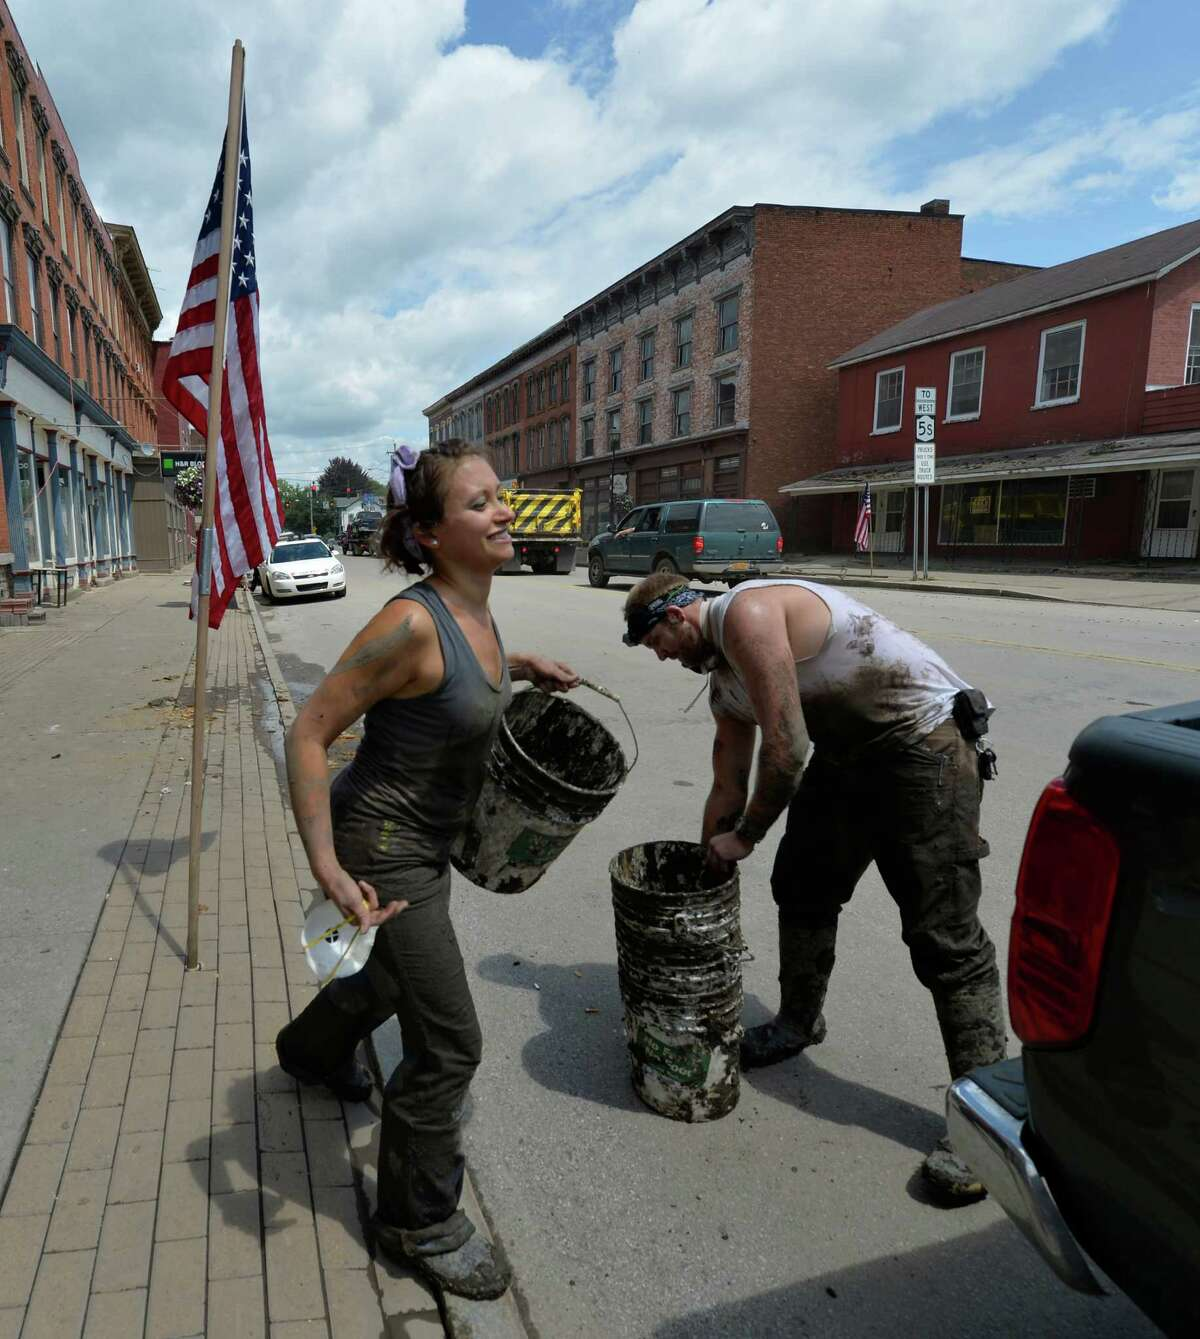 Volunteers Laura Harrison of Amsterdam and Jake Kruger from Tribes Hill put their buckets in their truck before going home for the day Wednesday July 3, 2013, after assisting in the clean up of 52 Main Street in Fort Plain, N.Y. (Skip Dickstein/Times Union)